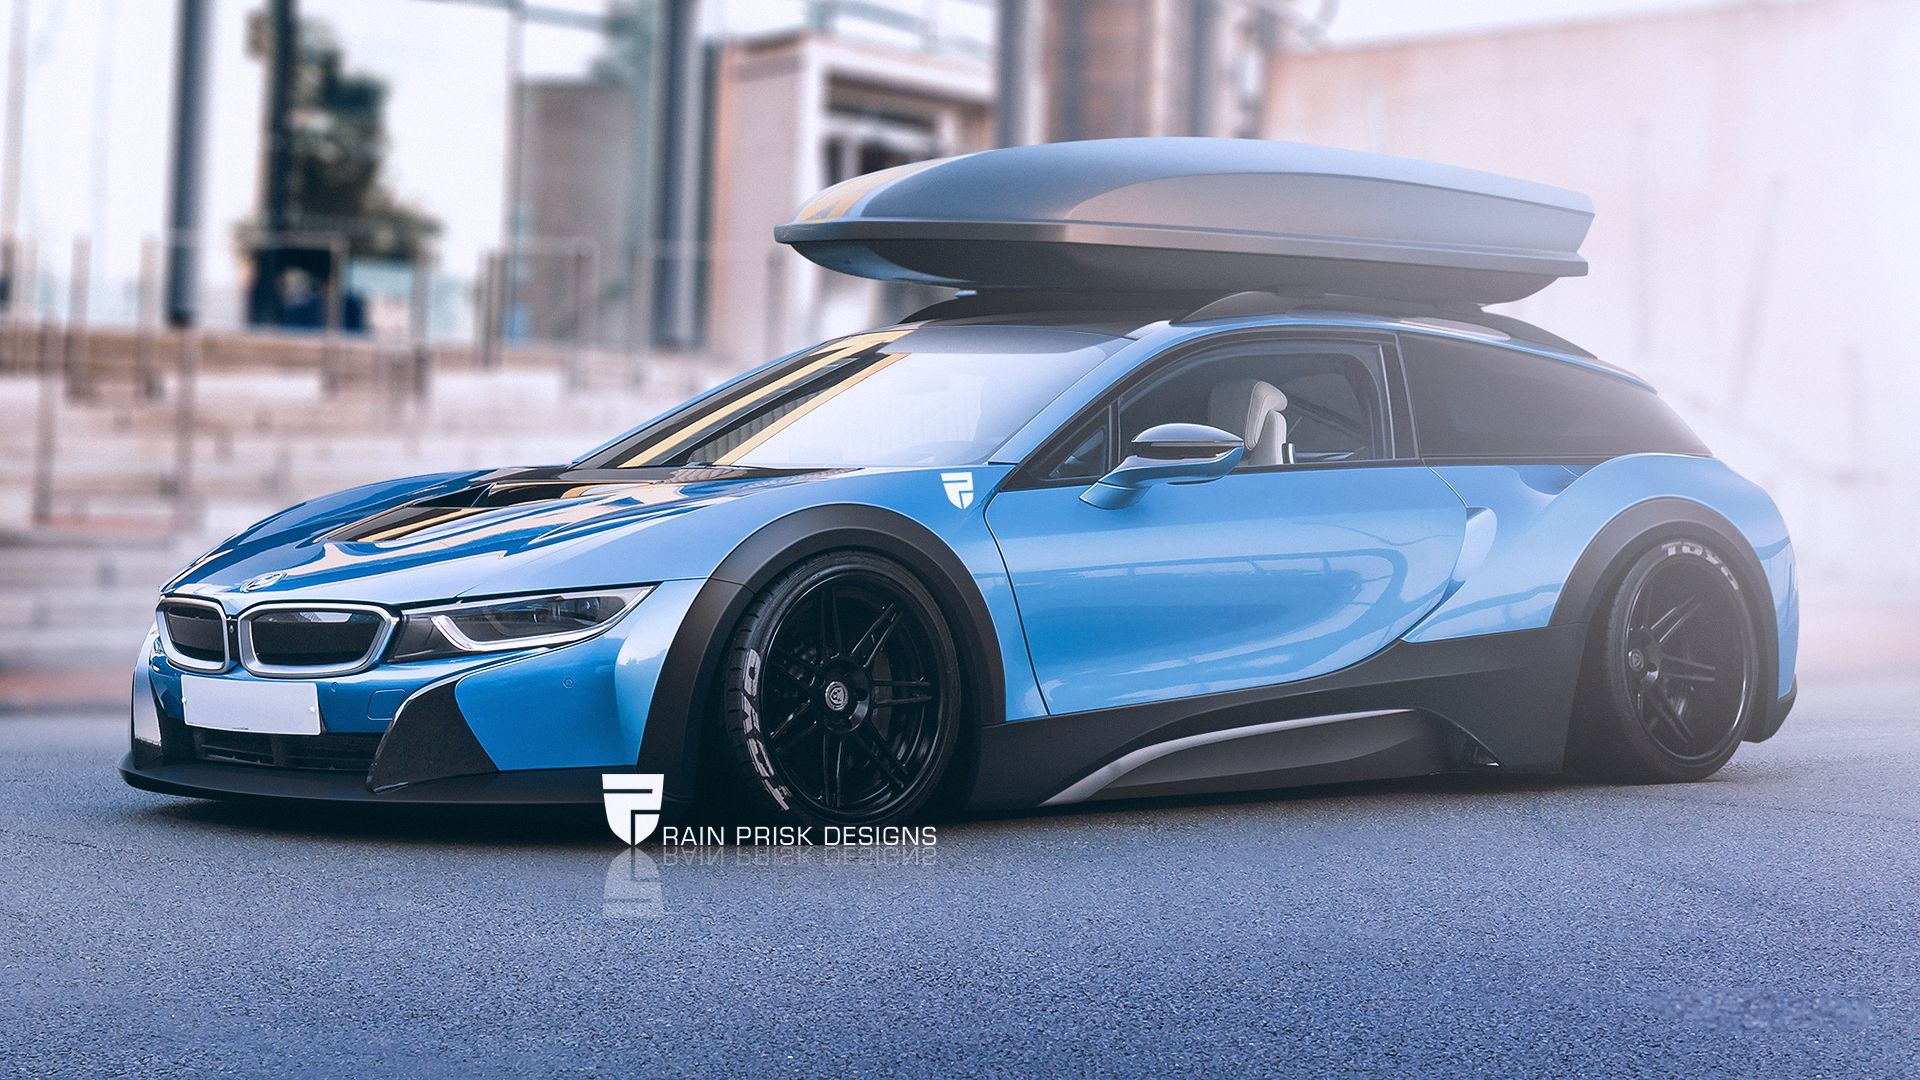 BMW i8 Shooting Brake by rainpriskviantart on DeviantArt